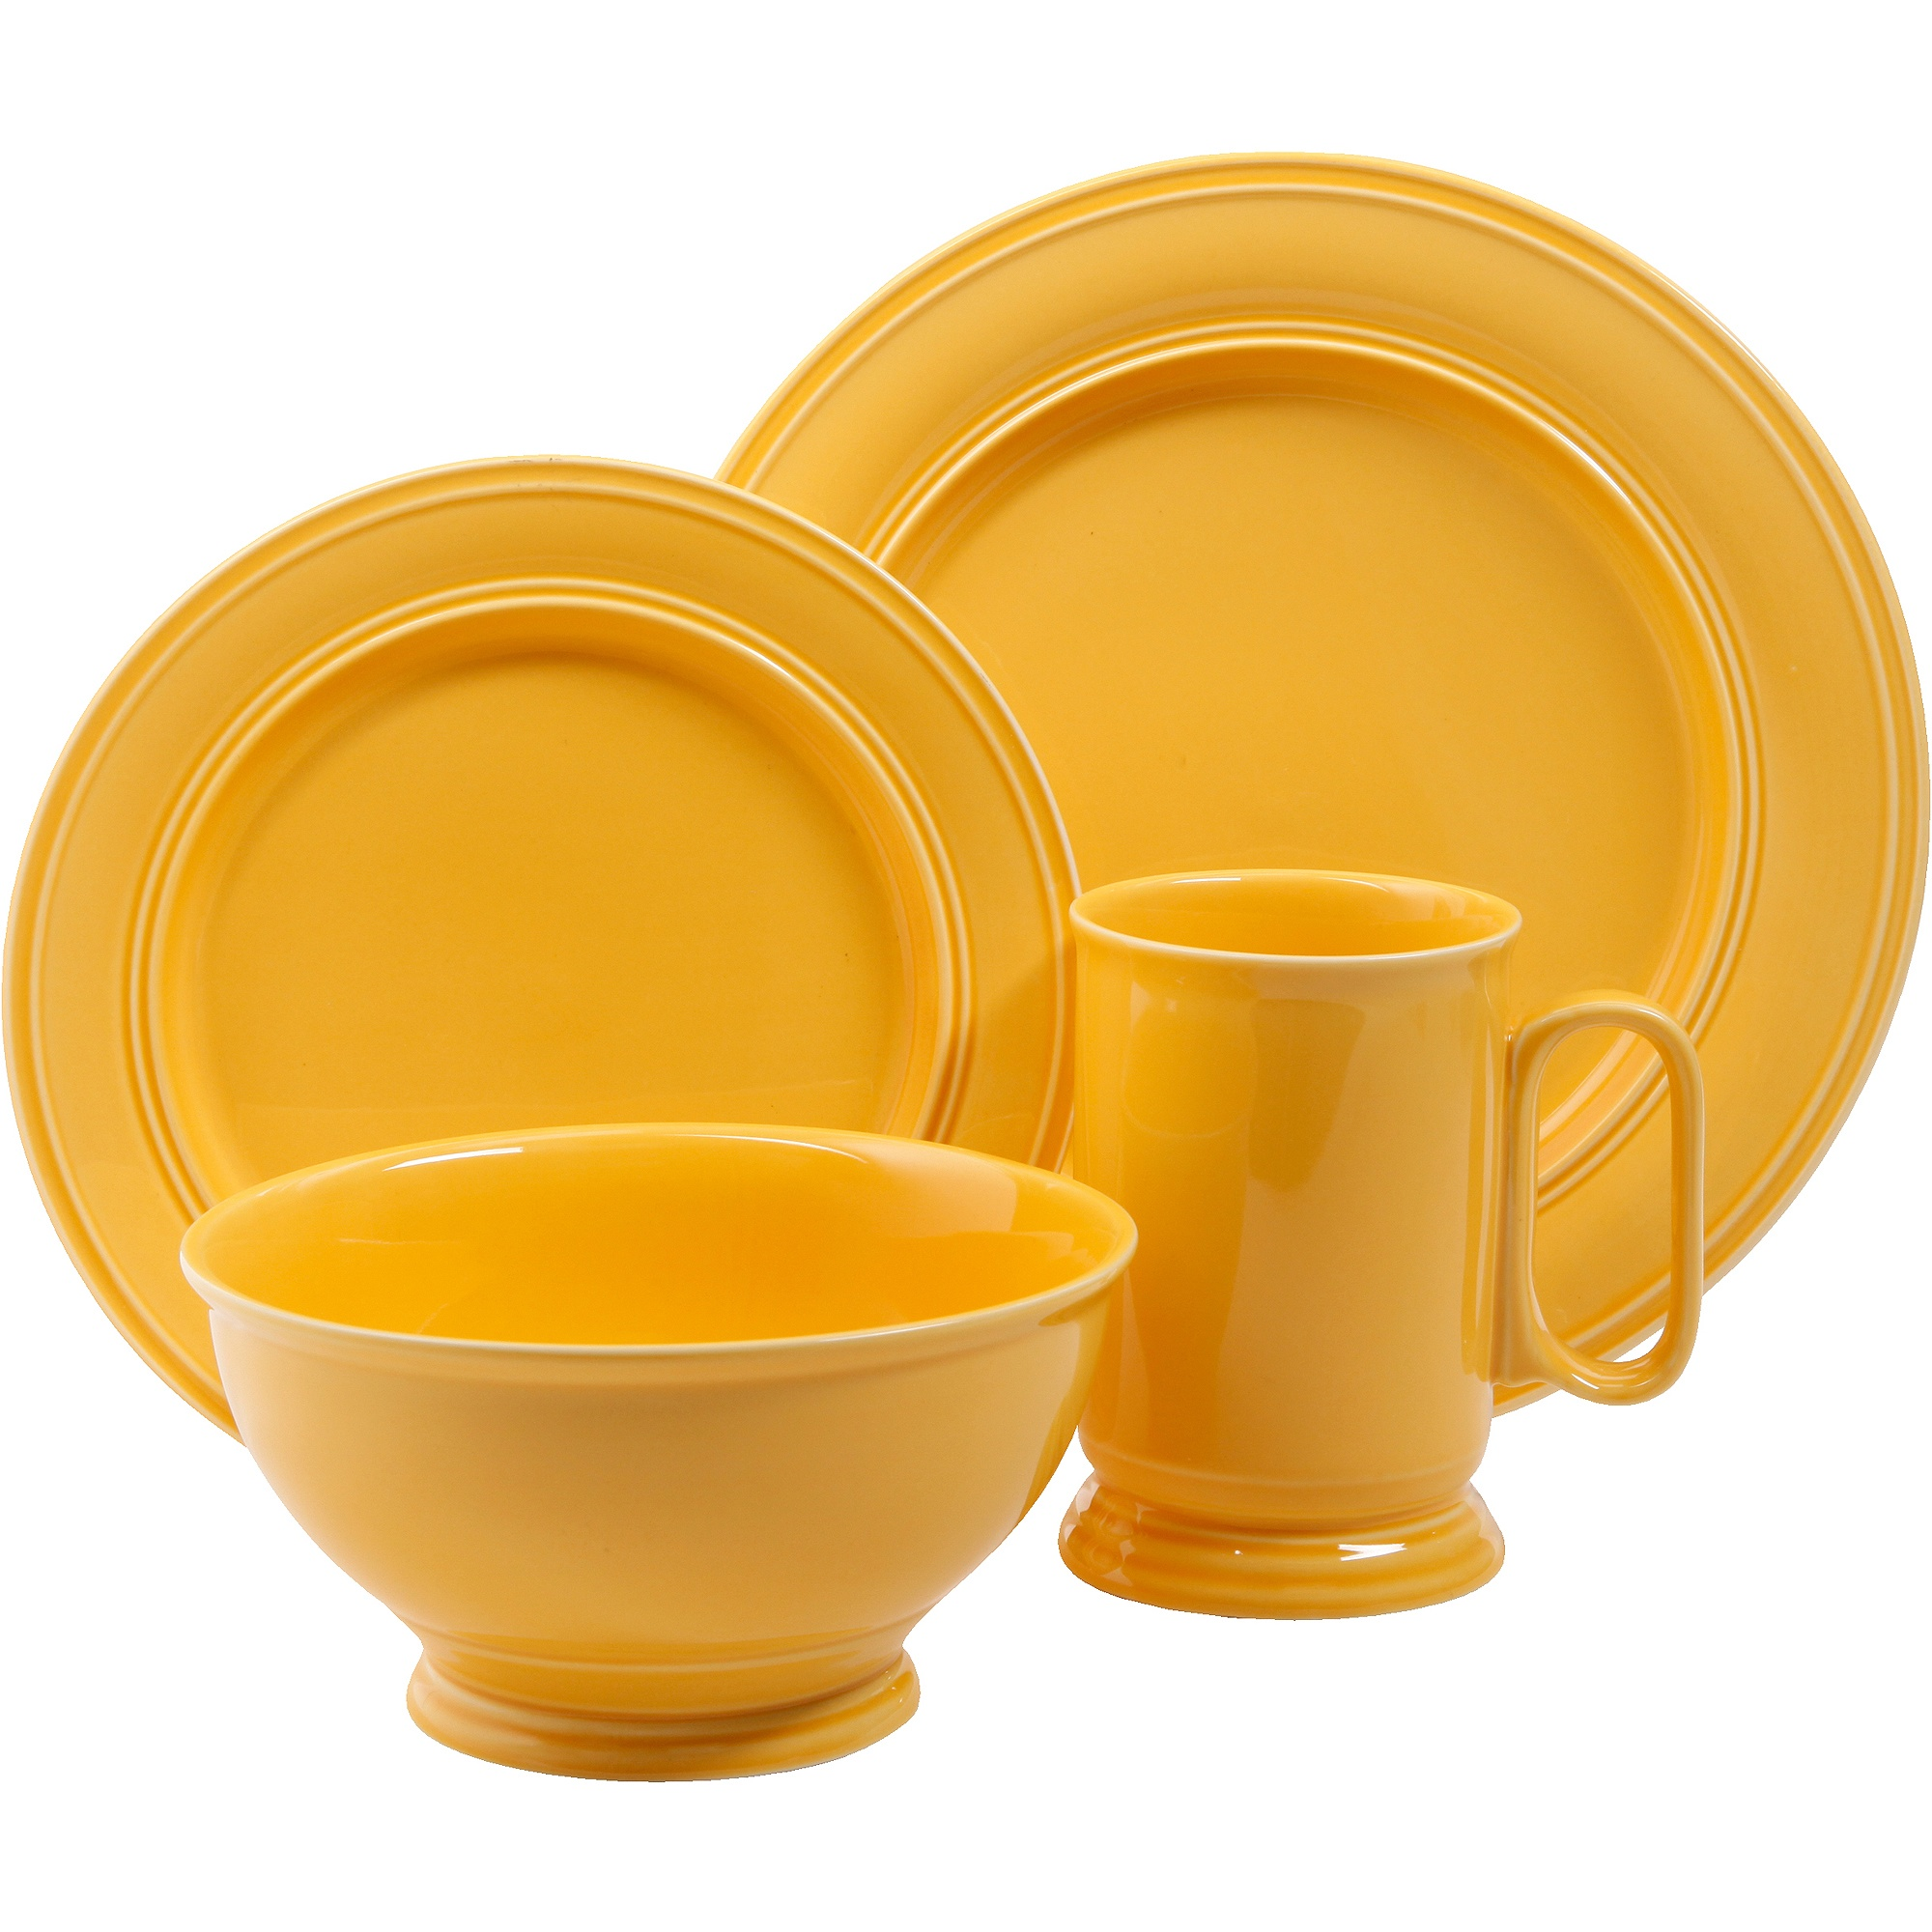 Pfaltzgraff Stoneware Dinnerware Sets | Stoneware Dinnerware Sets | Bed Bath and Beyond Plates